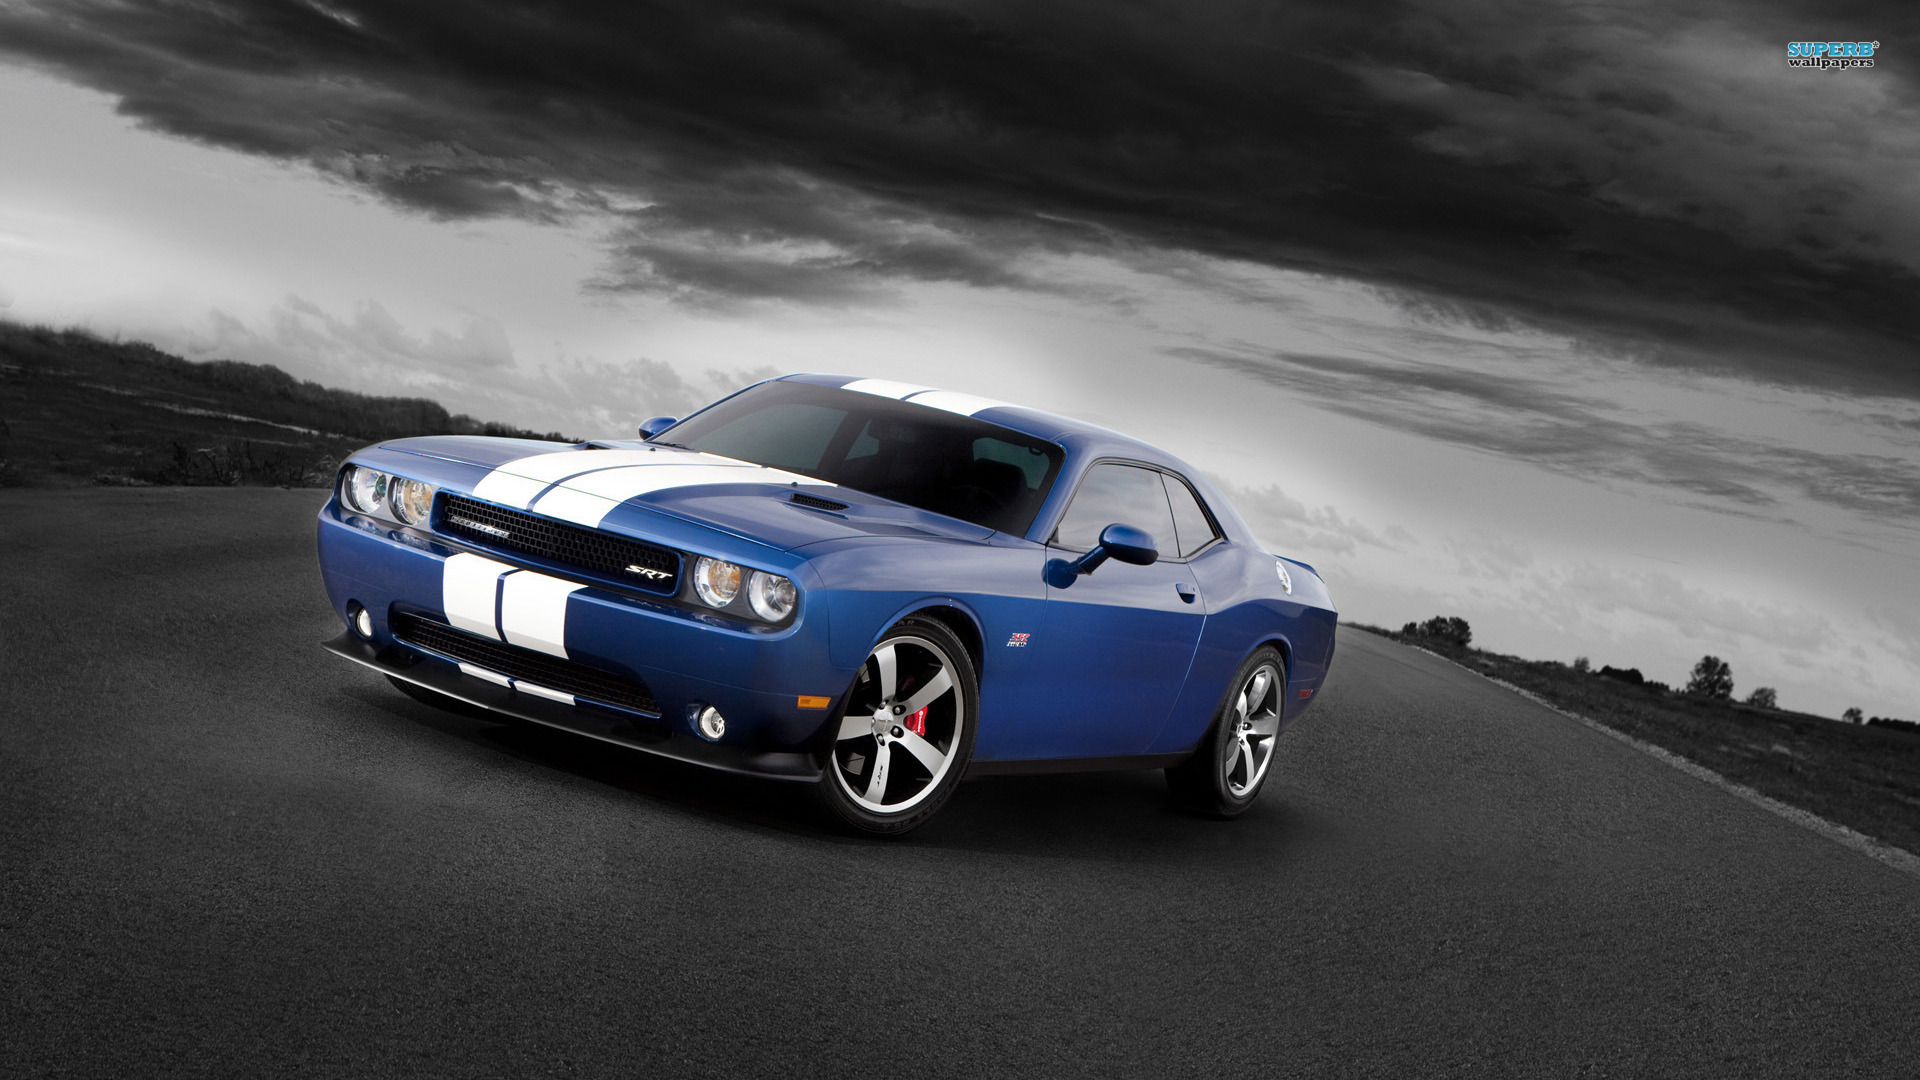 dodge challenger srt8 wallpaper. Black Bedroom Furniture Sets. Home Design Ideas